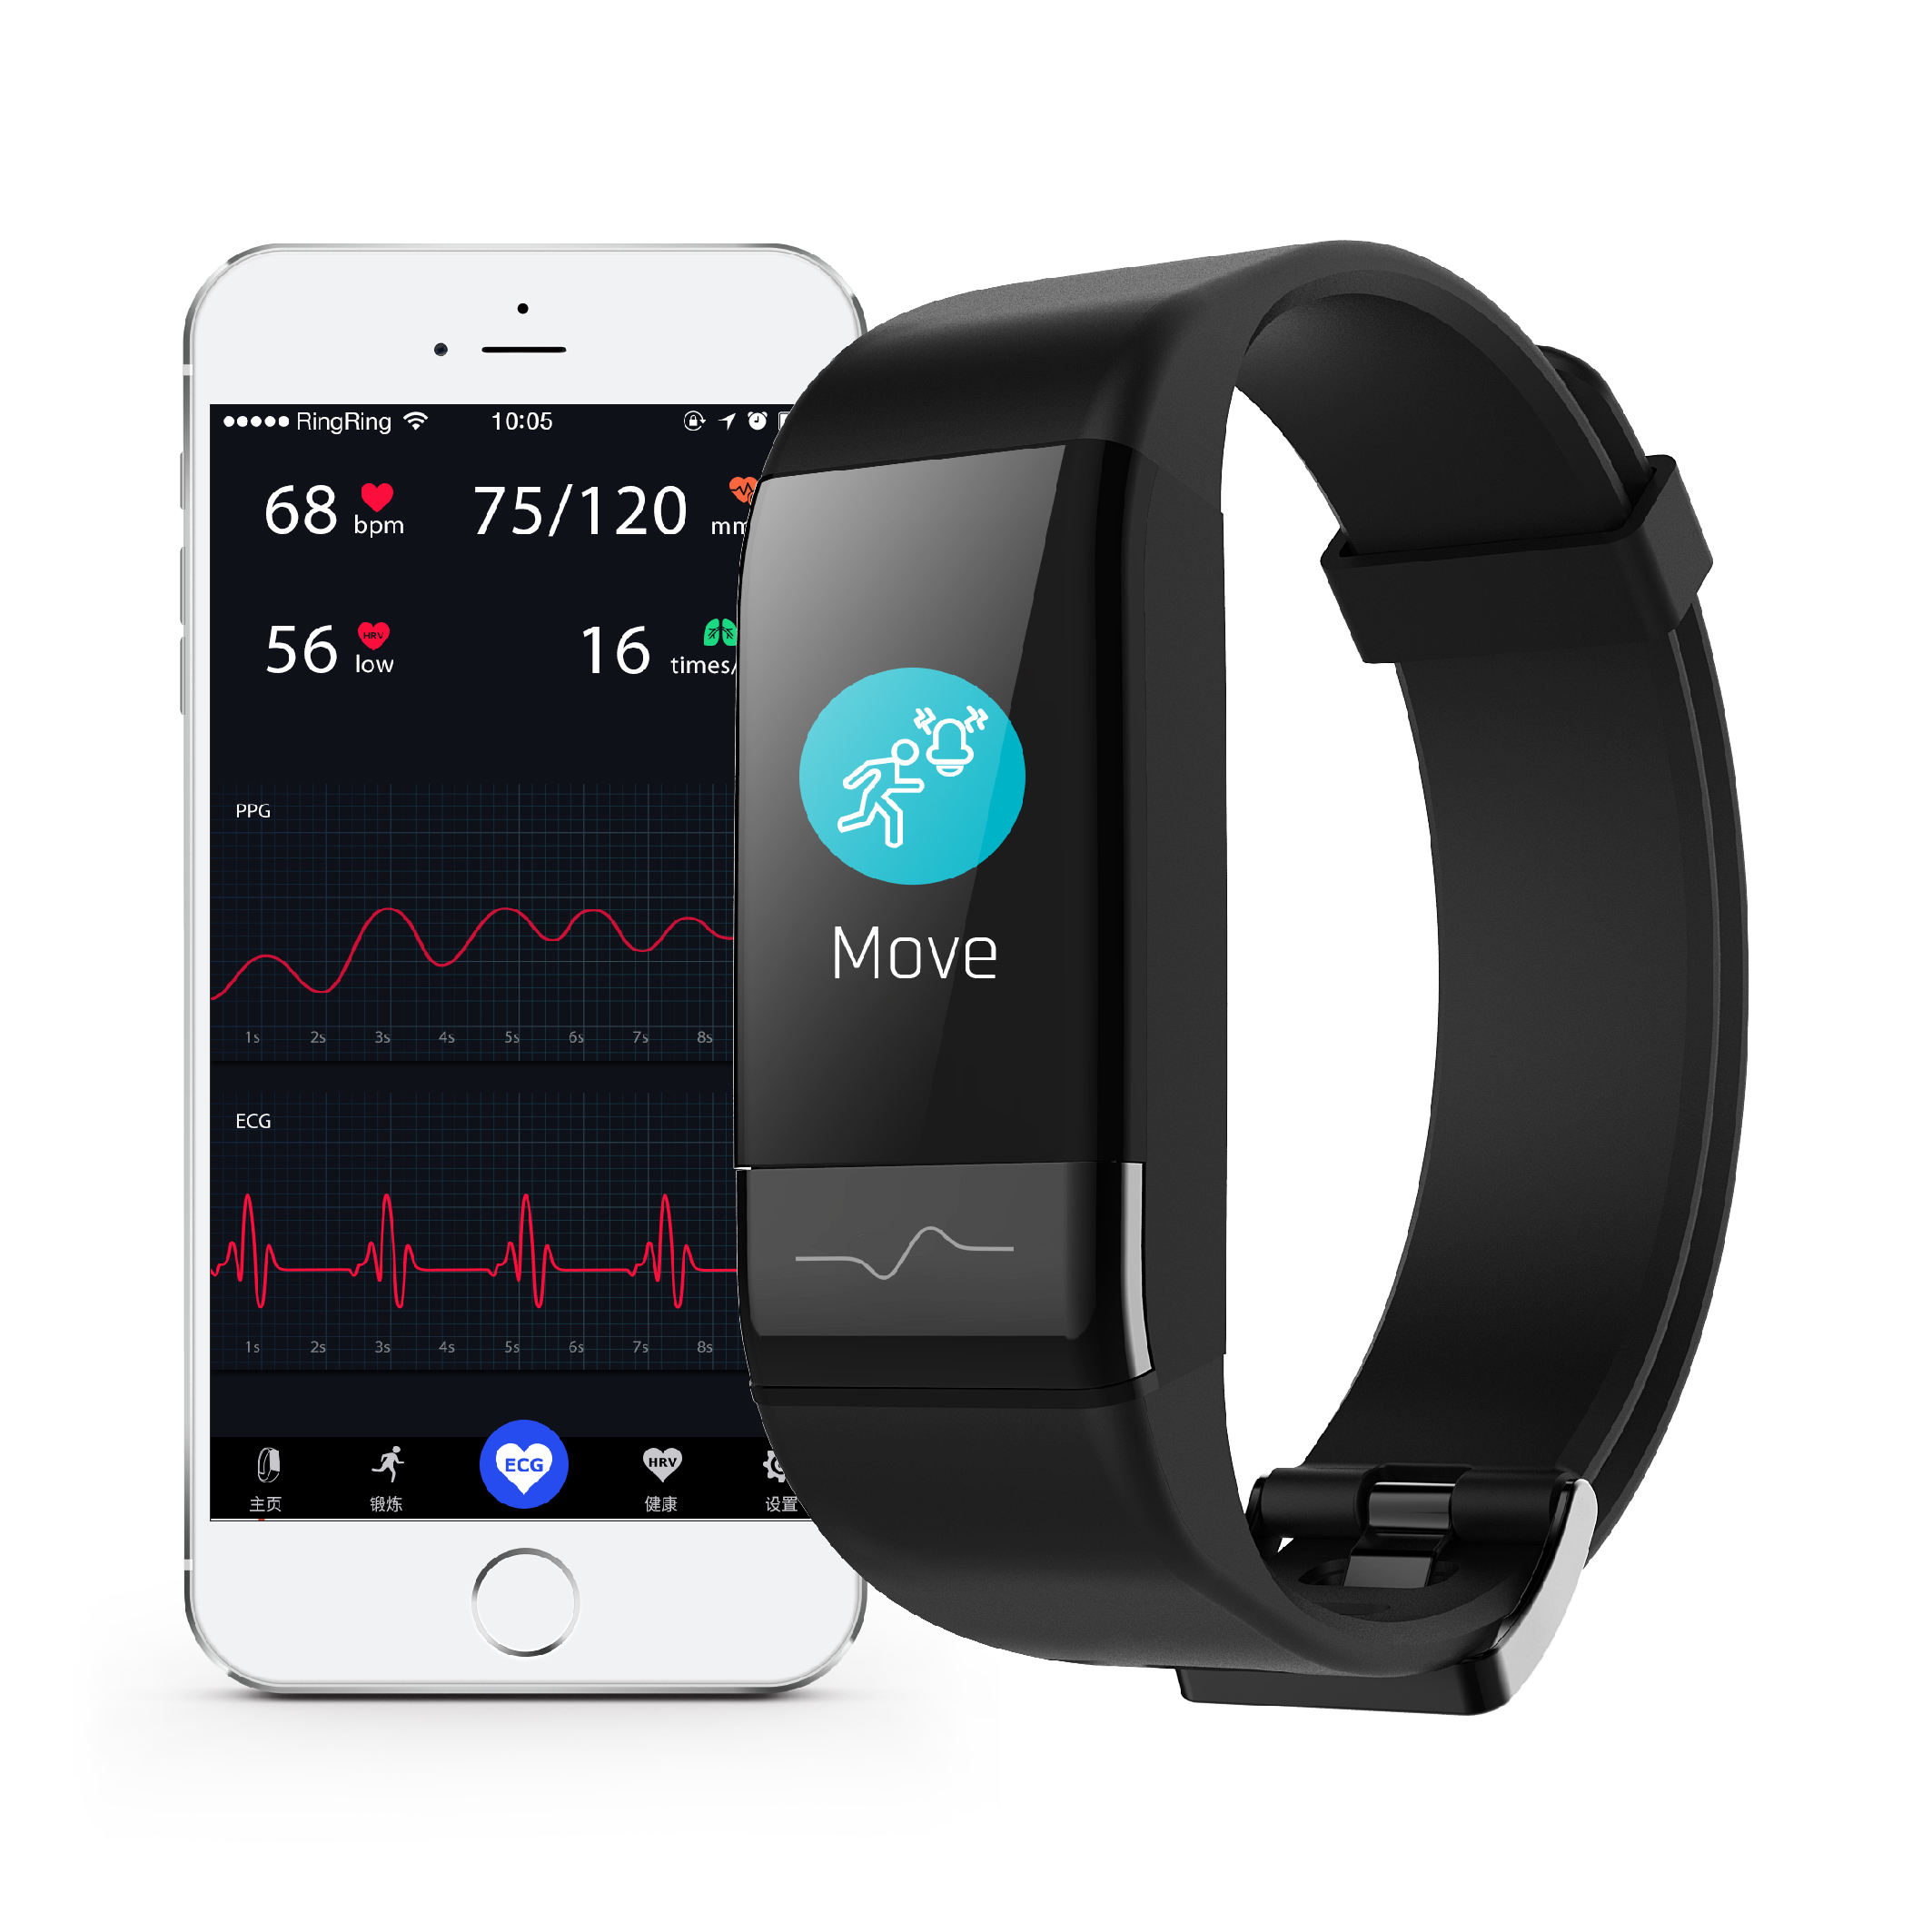 J-Stijl 1790 Ecg Holter Smart Band Ce Rohs Smart Armband